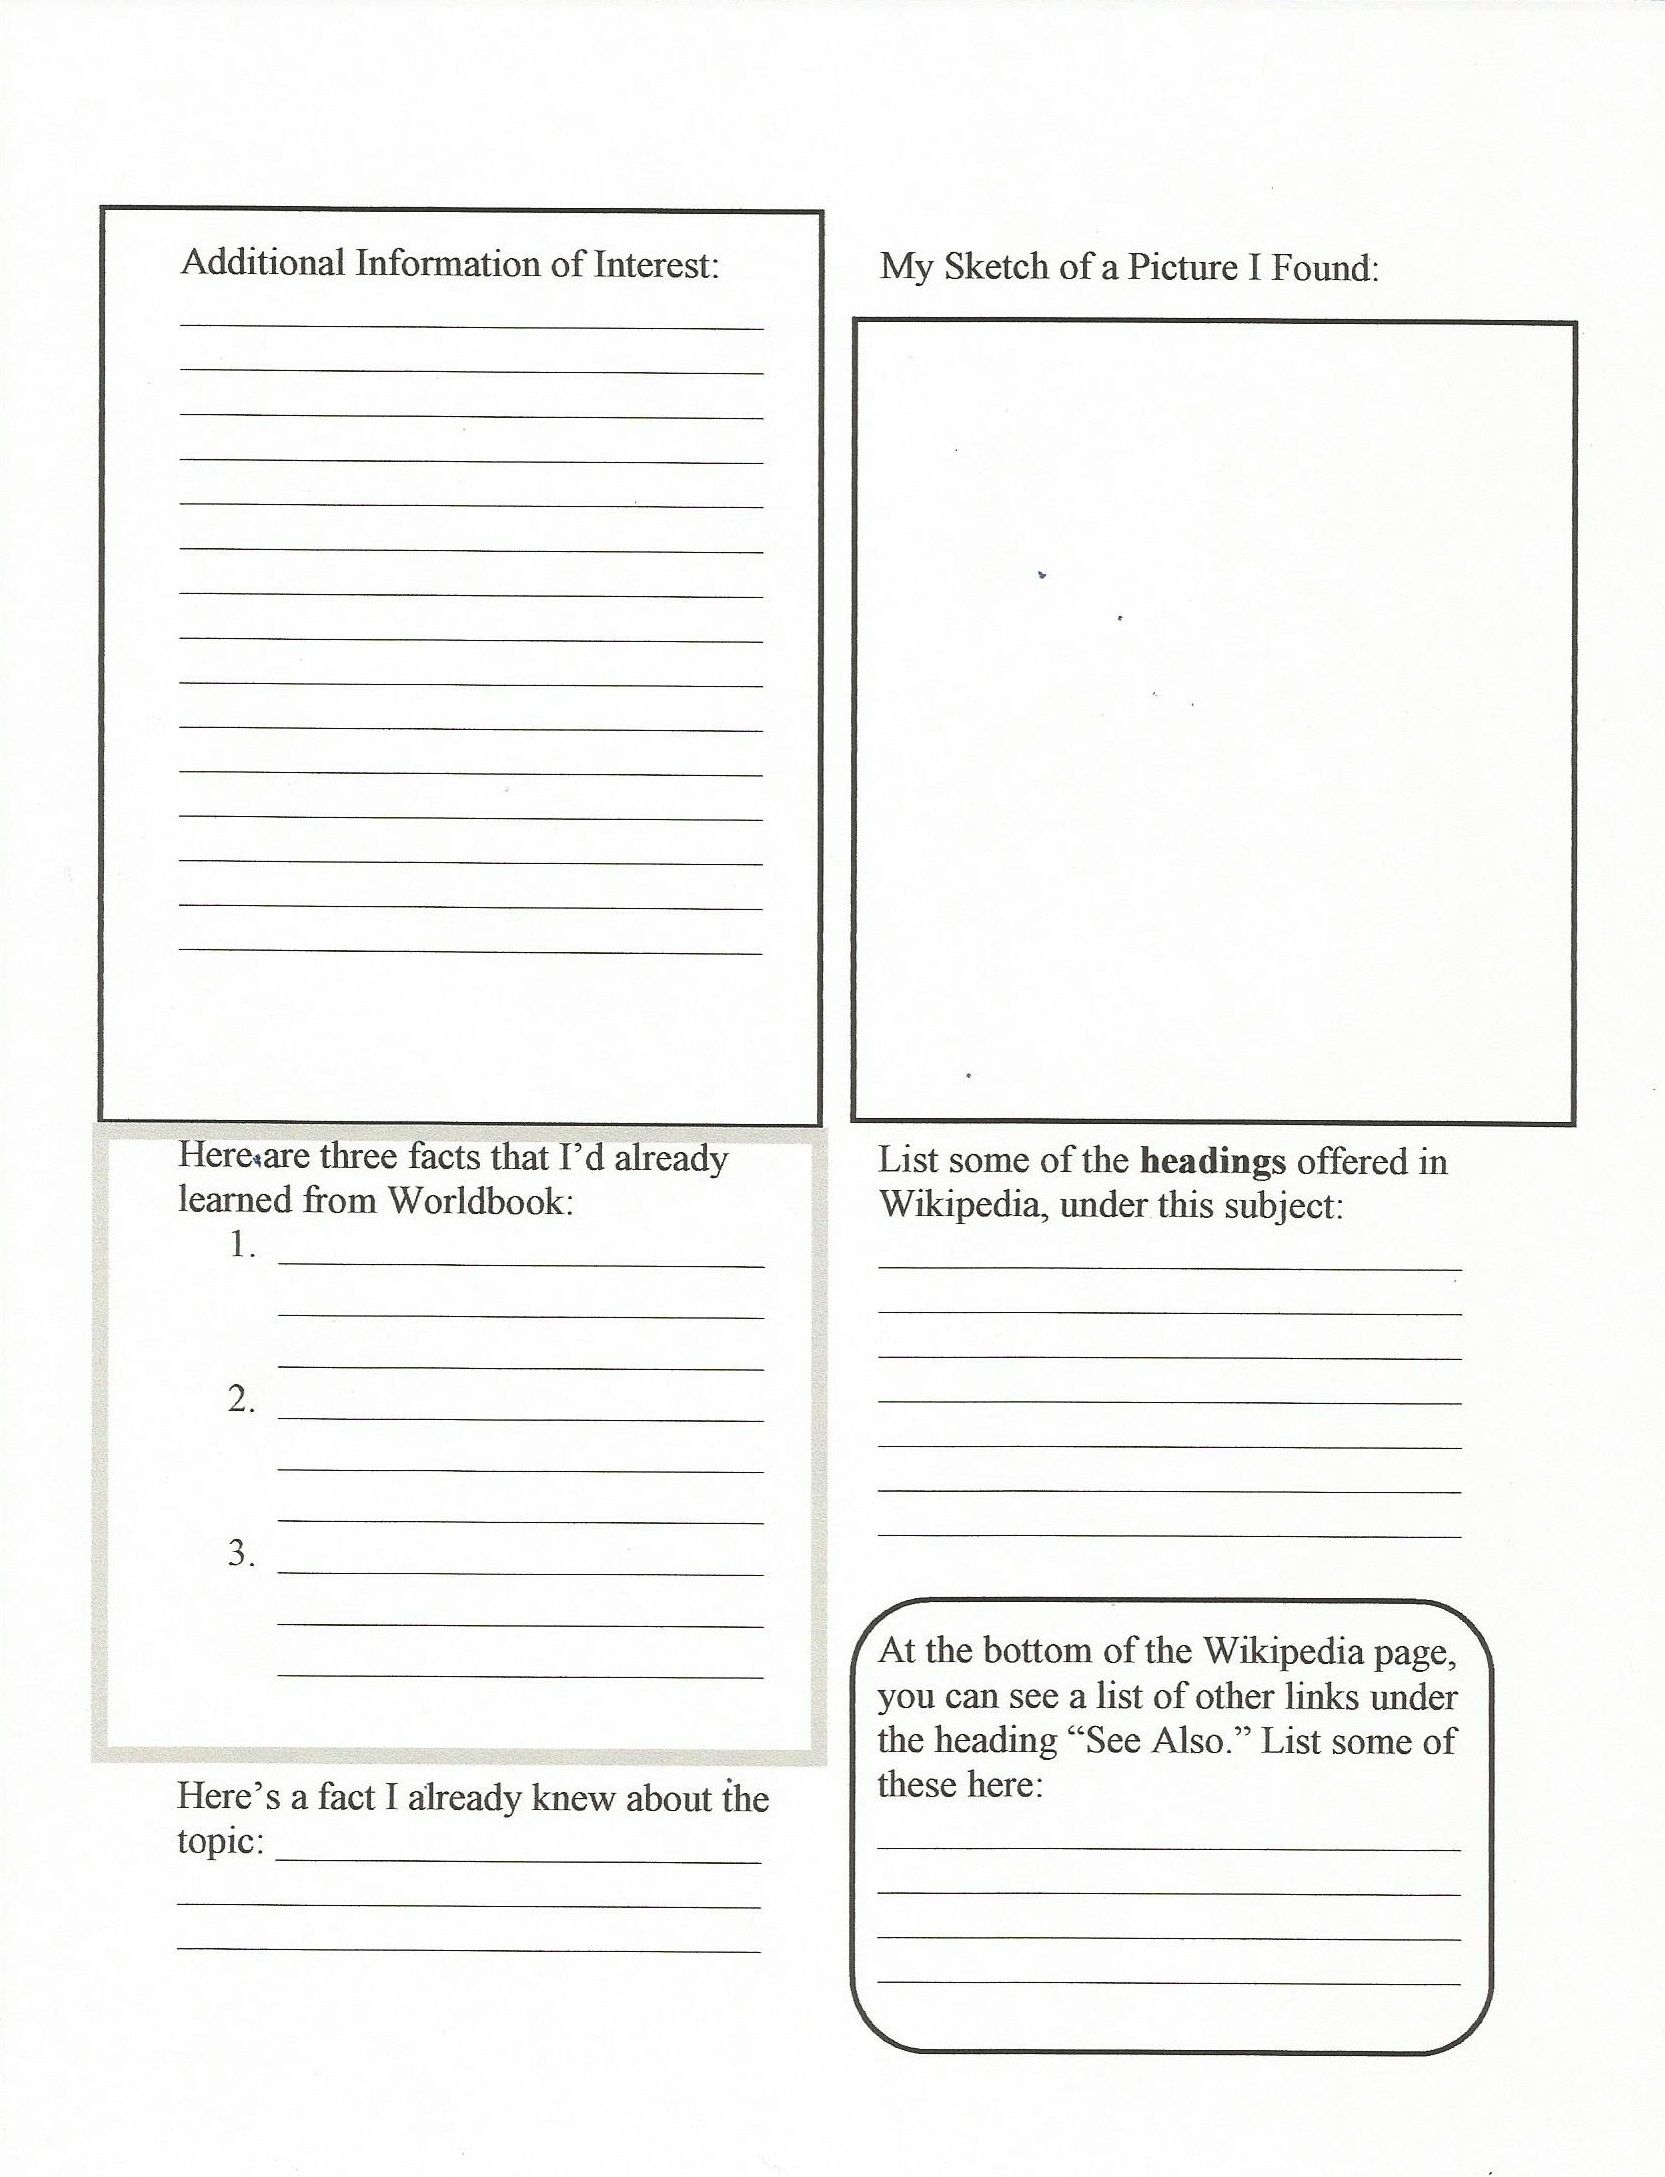 Worksheets Trustworthiness Worksheets citing wikipedia middle school handout worksheet pg 2 comes from my educational website englishemporium